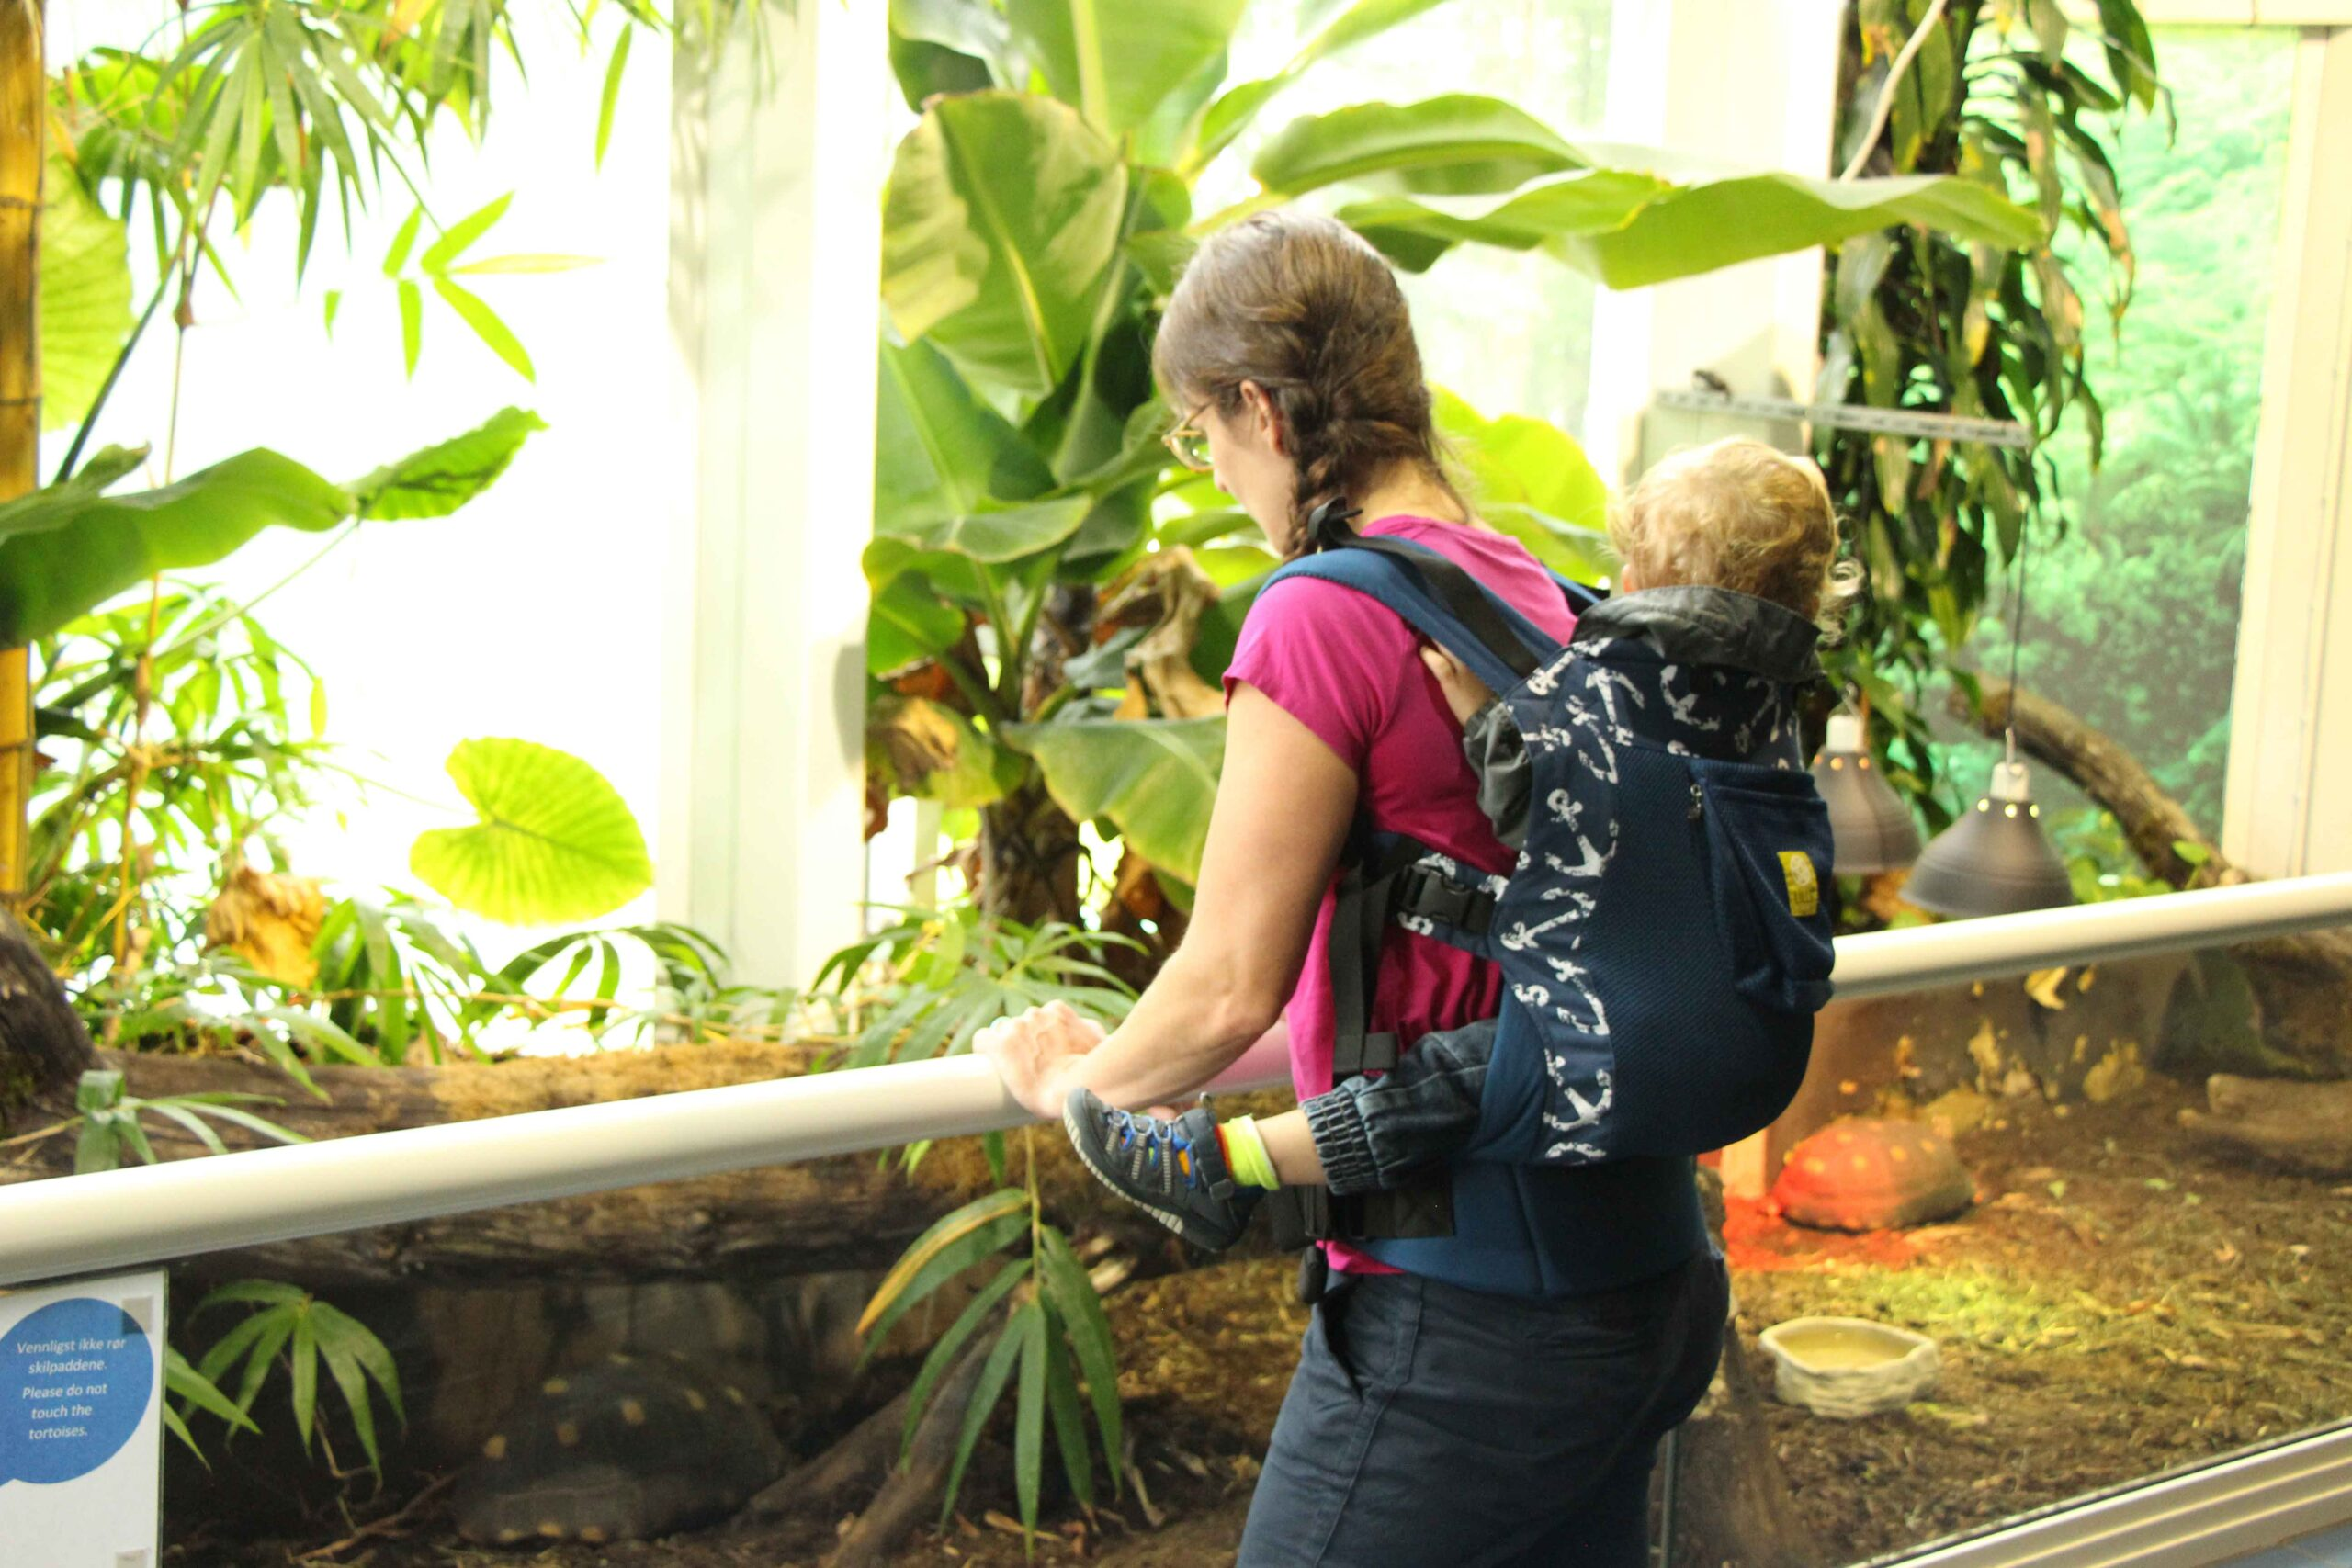 A mother carries her toddler in a LILLEbaby 3-in-1 CarryOn Toddler Carrier